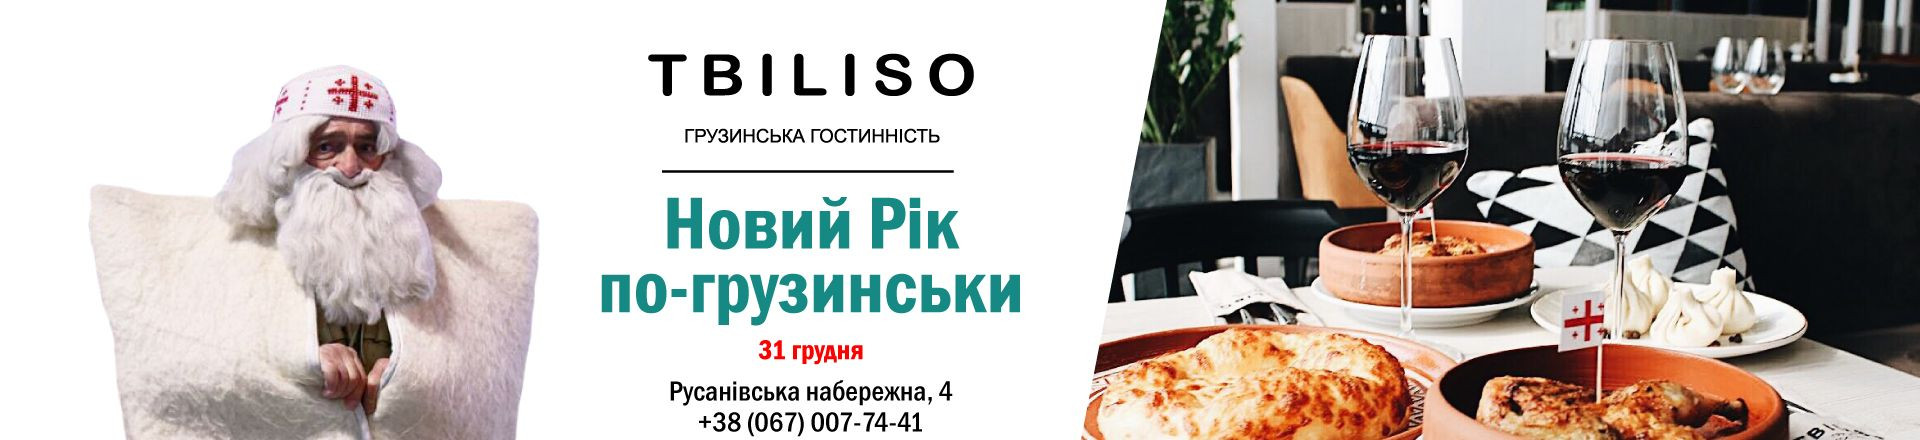 Meet the New Year's Eve with Tbilisi!